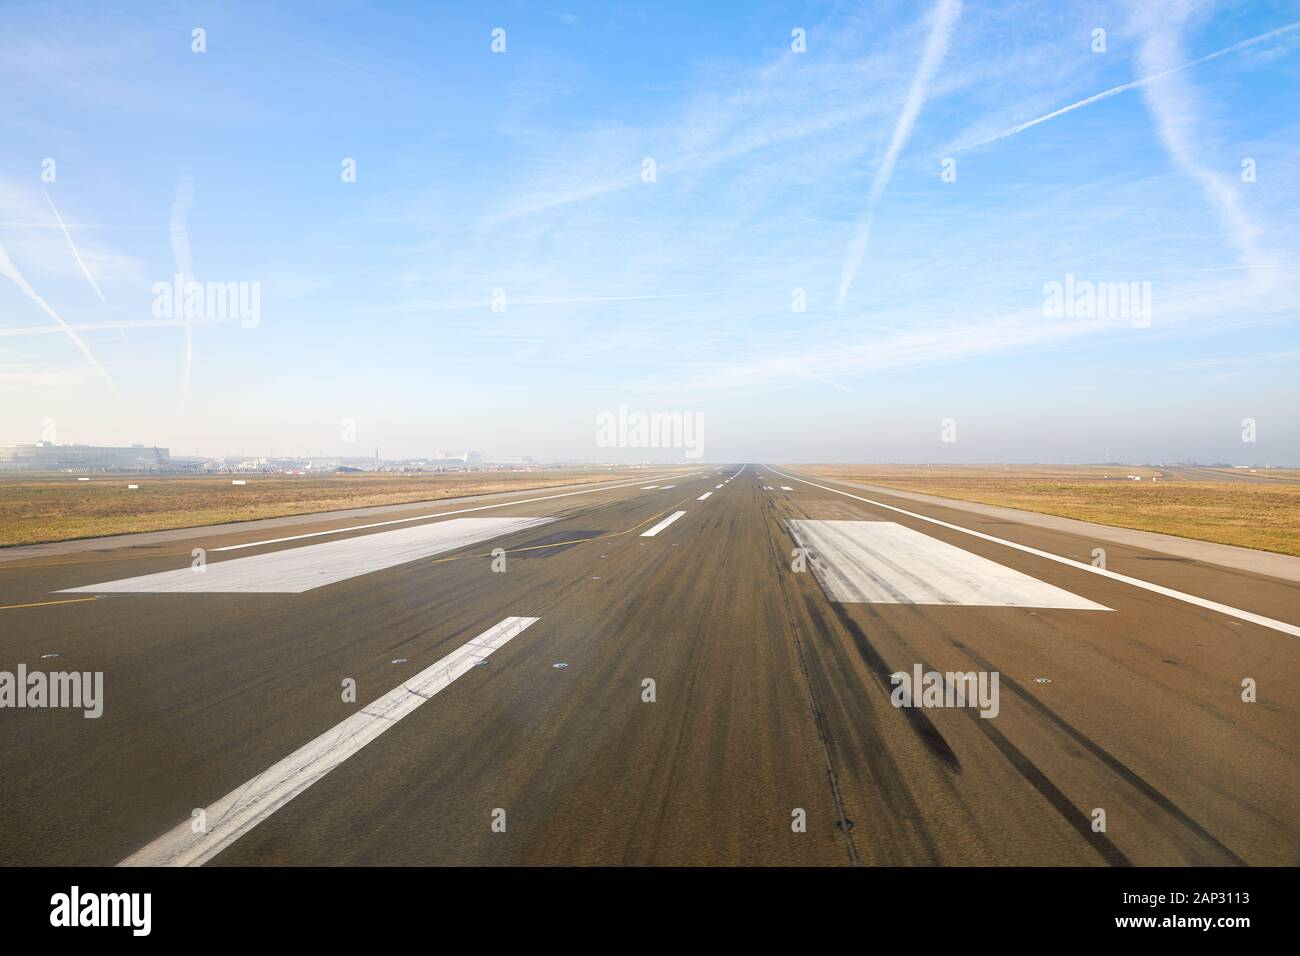 View of runway at Charles de Gaulle Airport, France Stock Photo